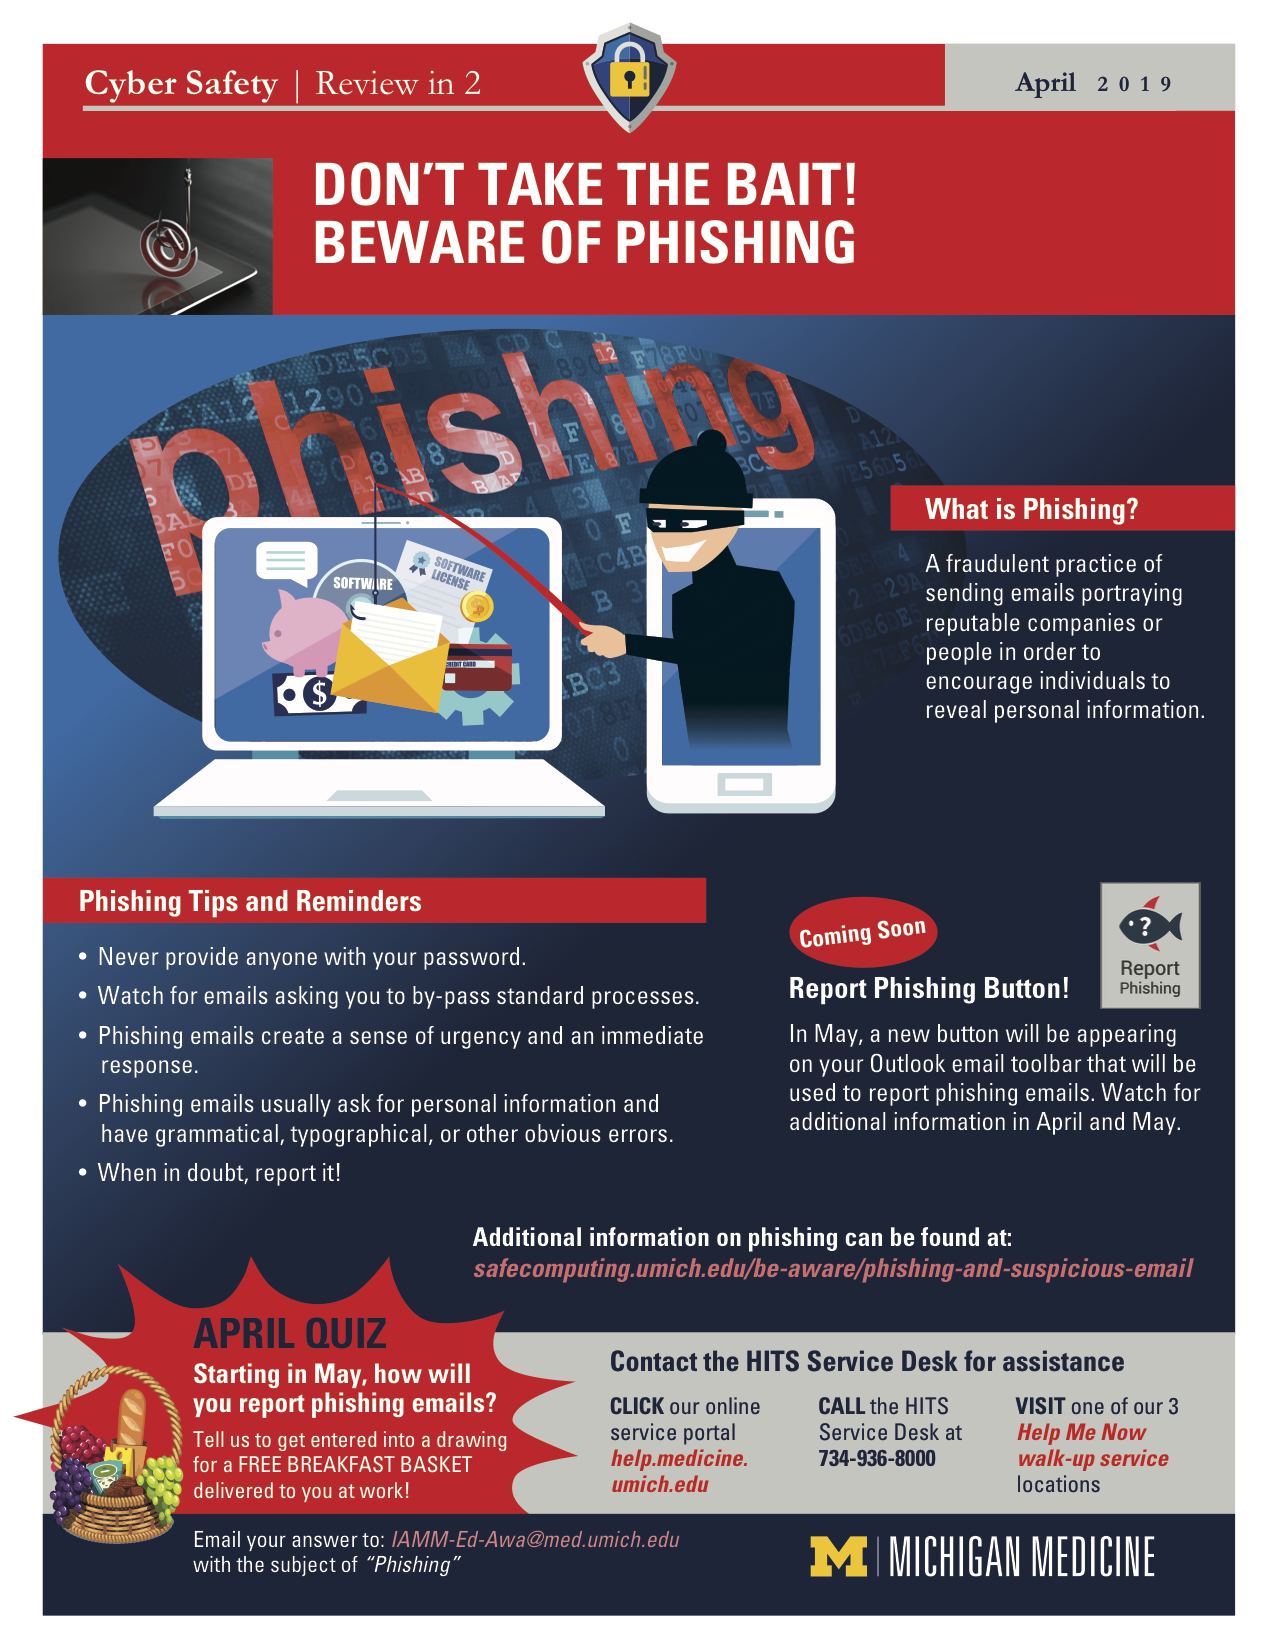 Phishing education Review in 2 poster from Michigan Medicine.